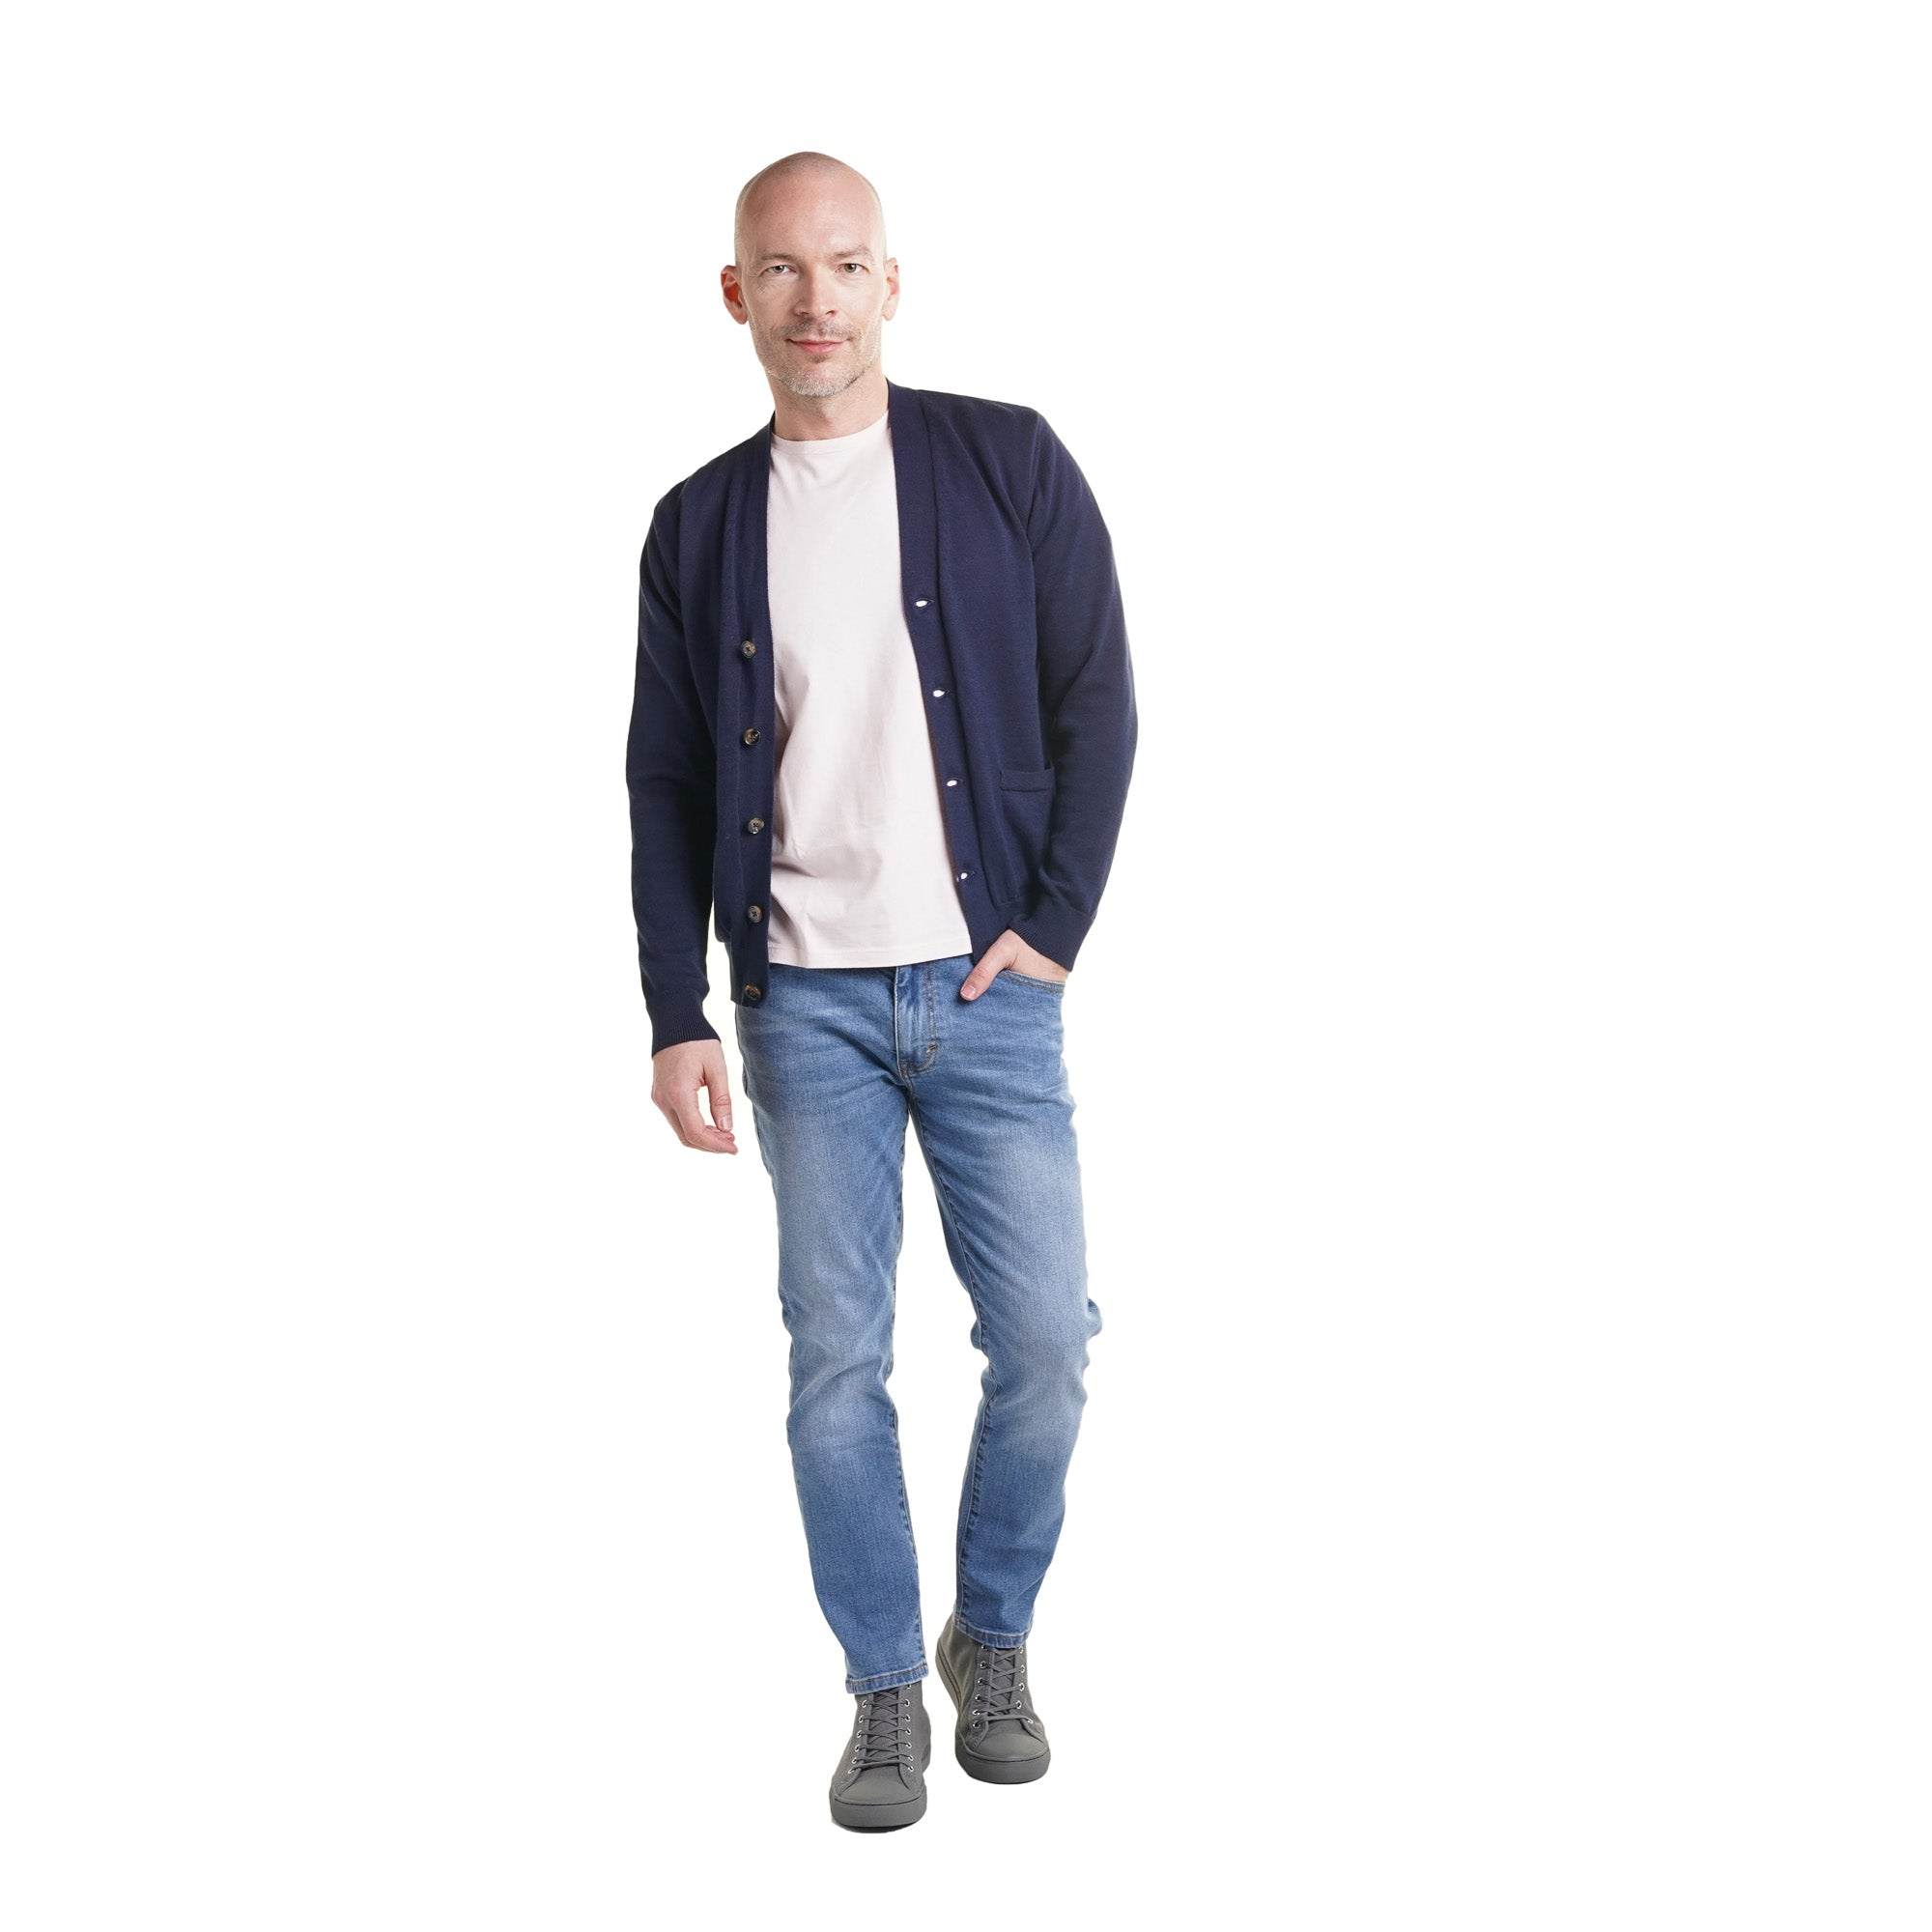 Cardigan with t-shirt and jeans